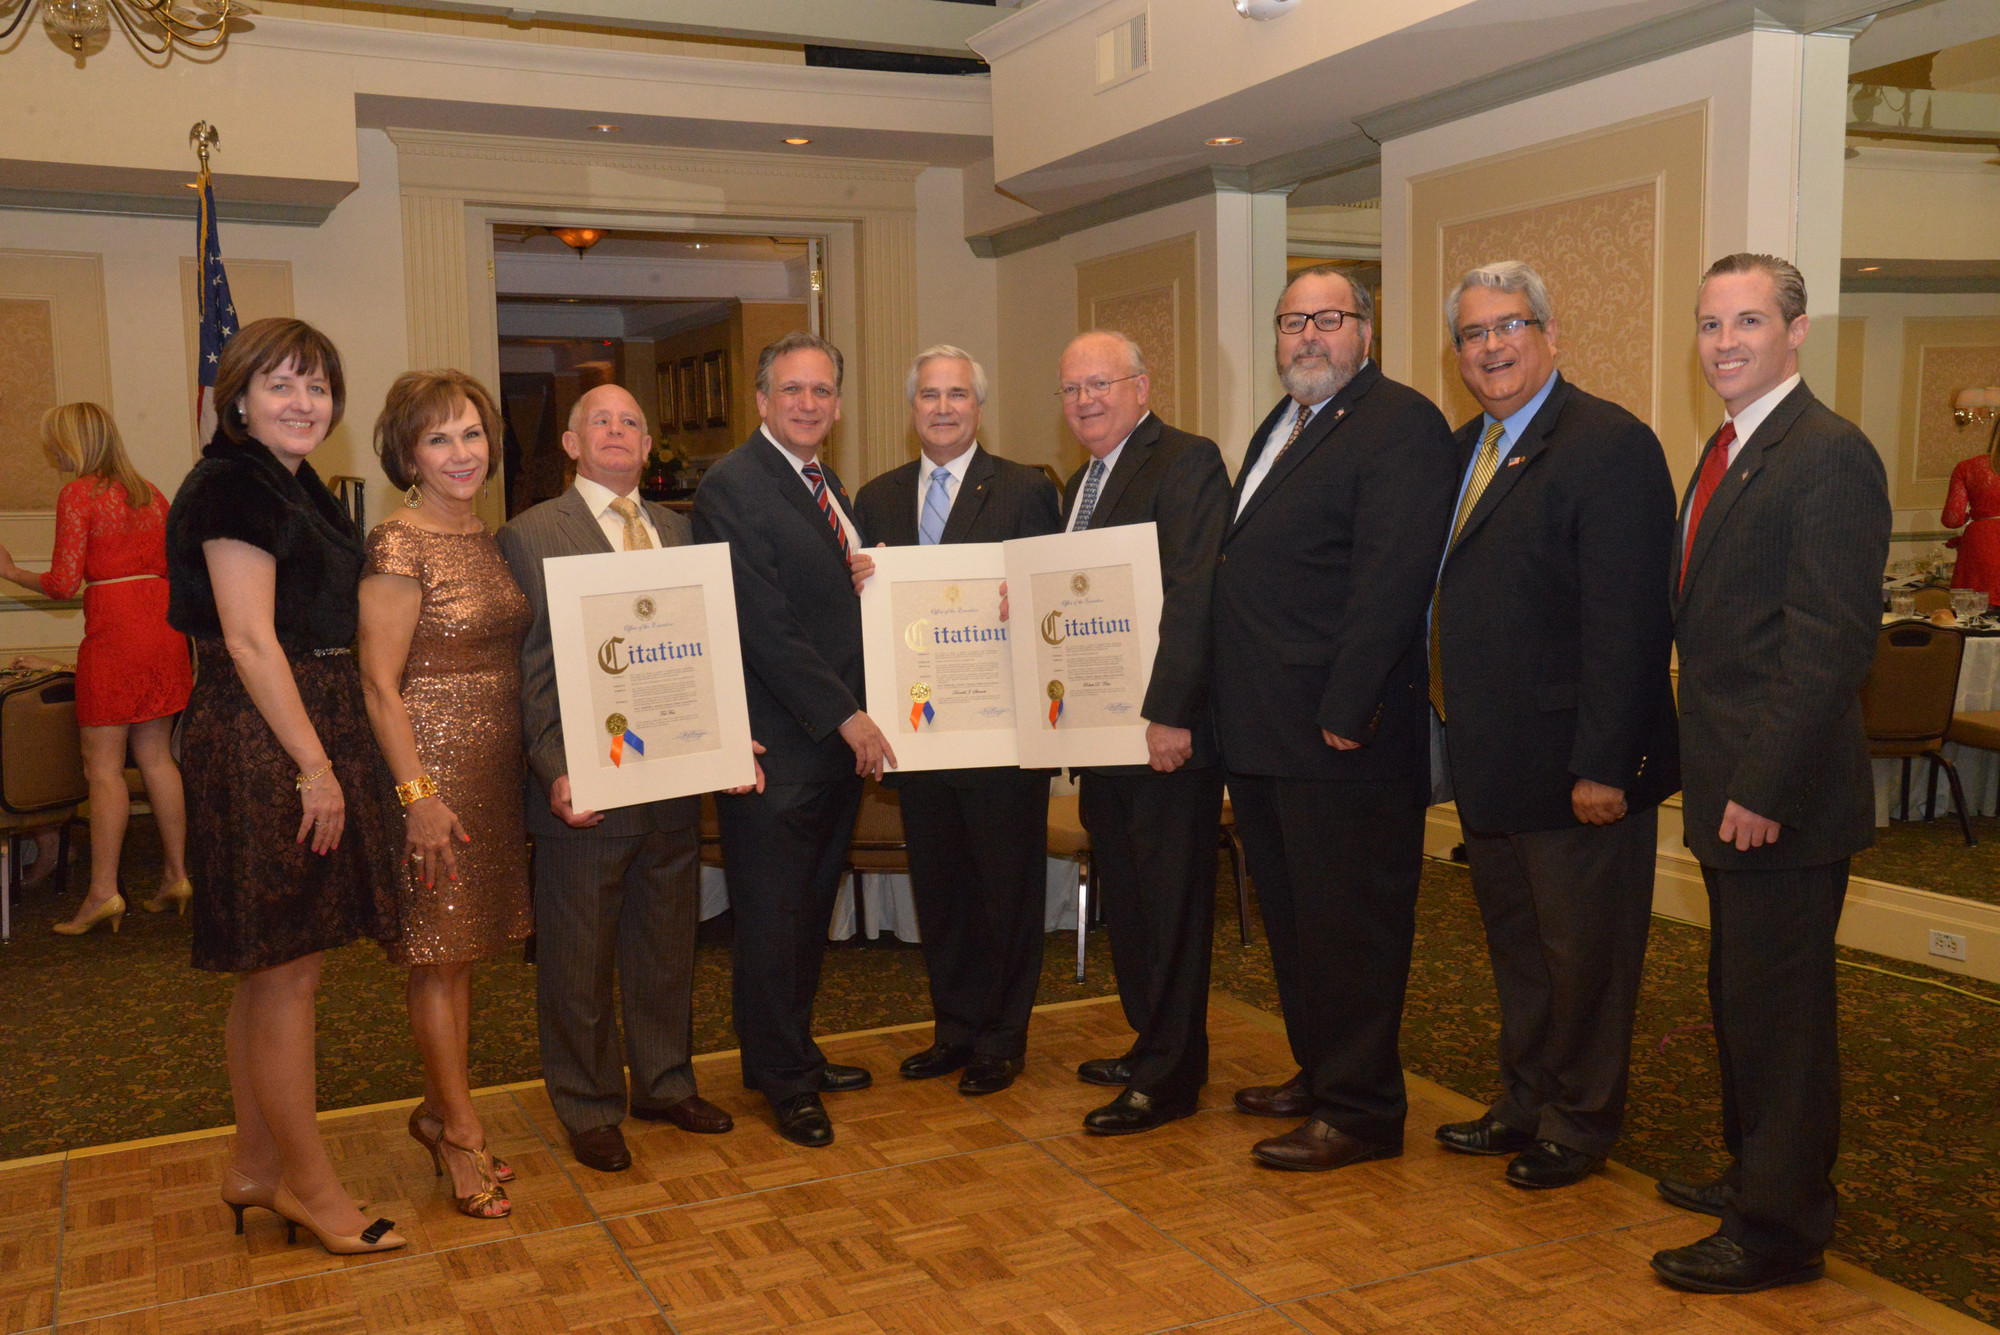 Organizer Jeanne Mulry, left, organizer Joan MacNaughton, honoree Tedd Fass, Nassau County Executive Ed Mangano, honoree Don Steinert, honoree Robert Klein, Rockville Centre Mayor Francis Murray, Town of Hempstead Councilman Anthony Santino and Village Trustee Kevin Glynn all attended the evening.